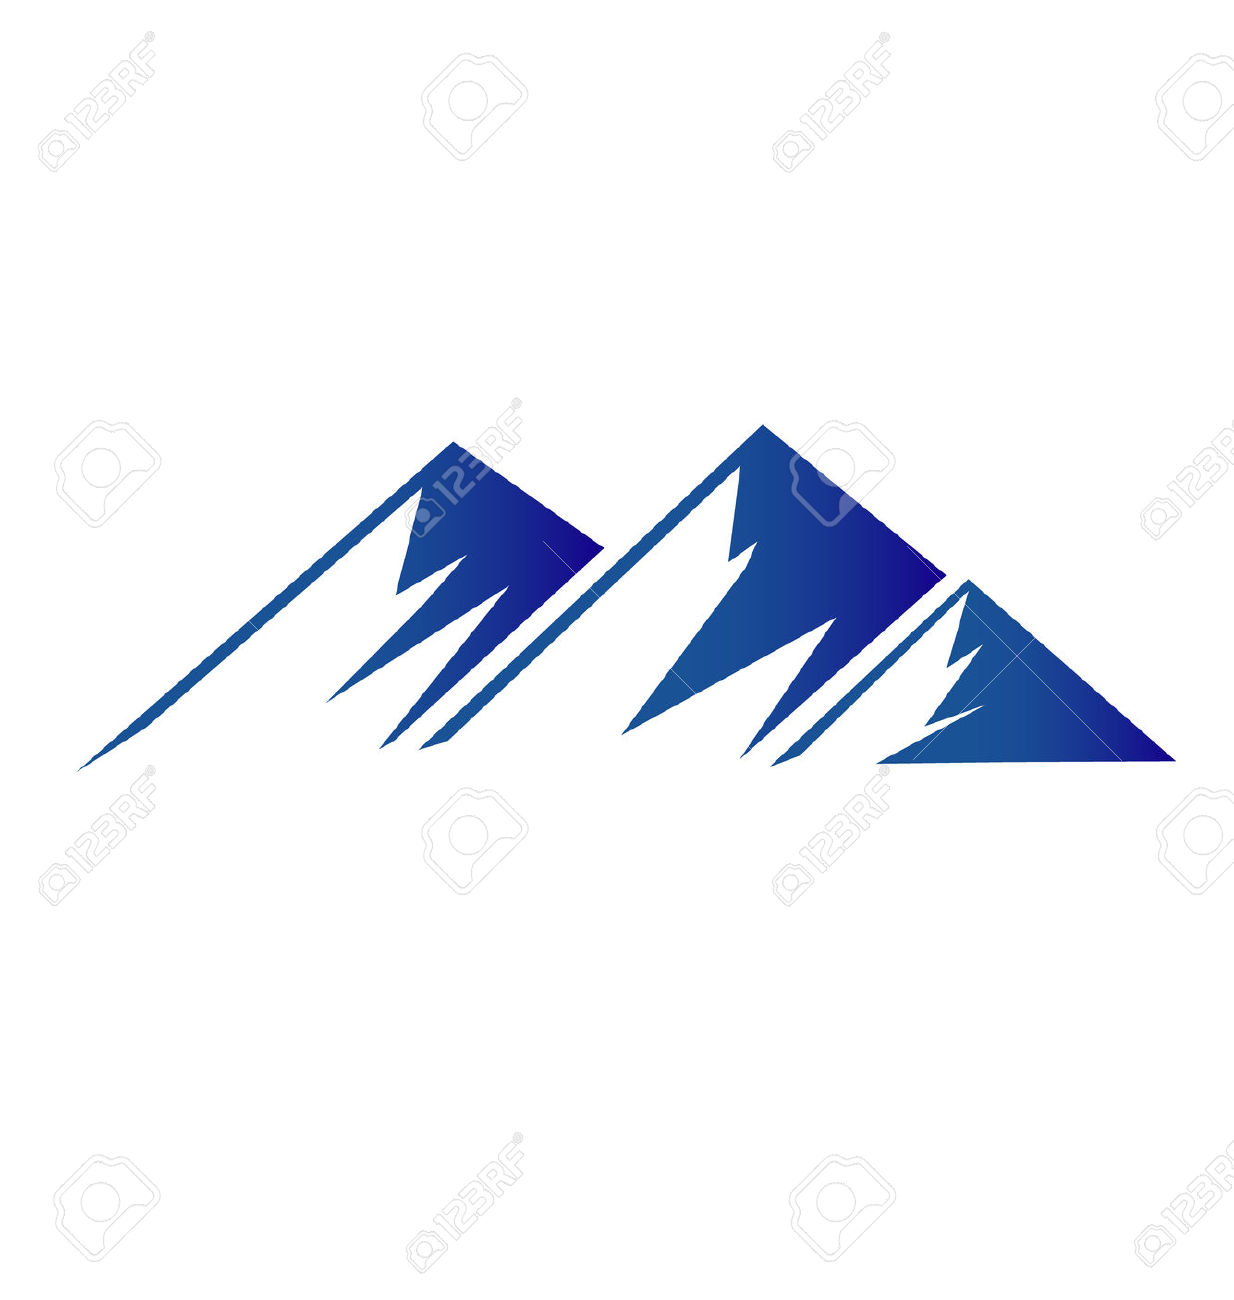 Mountain peaks clipart outline.